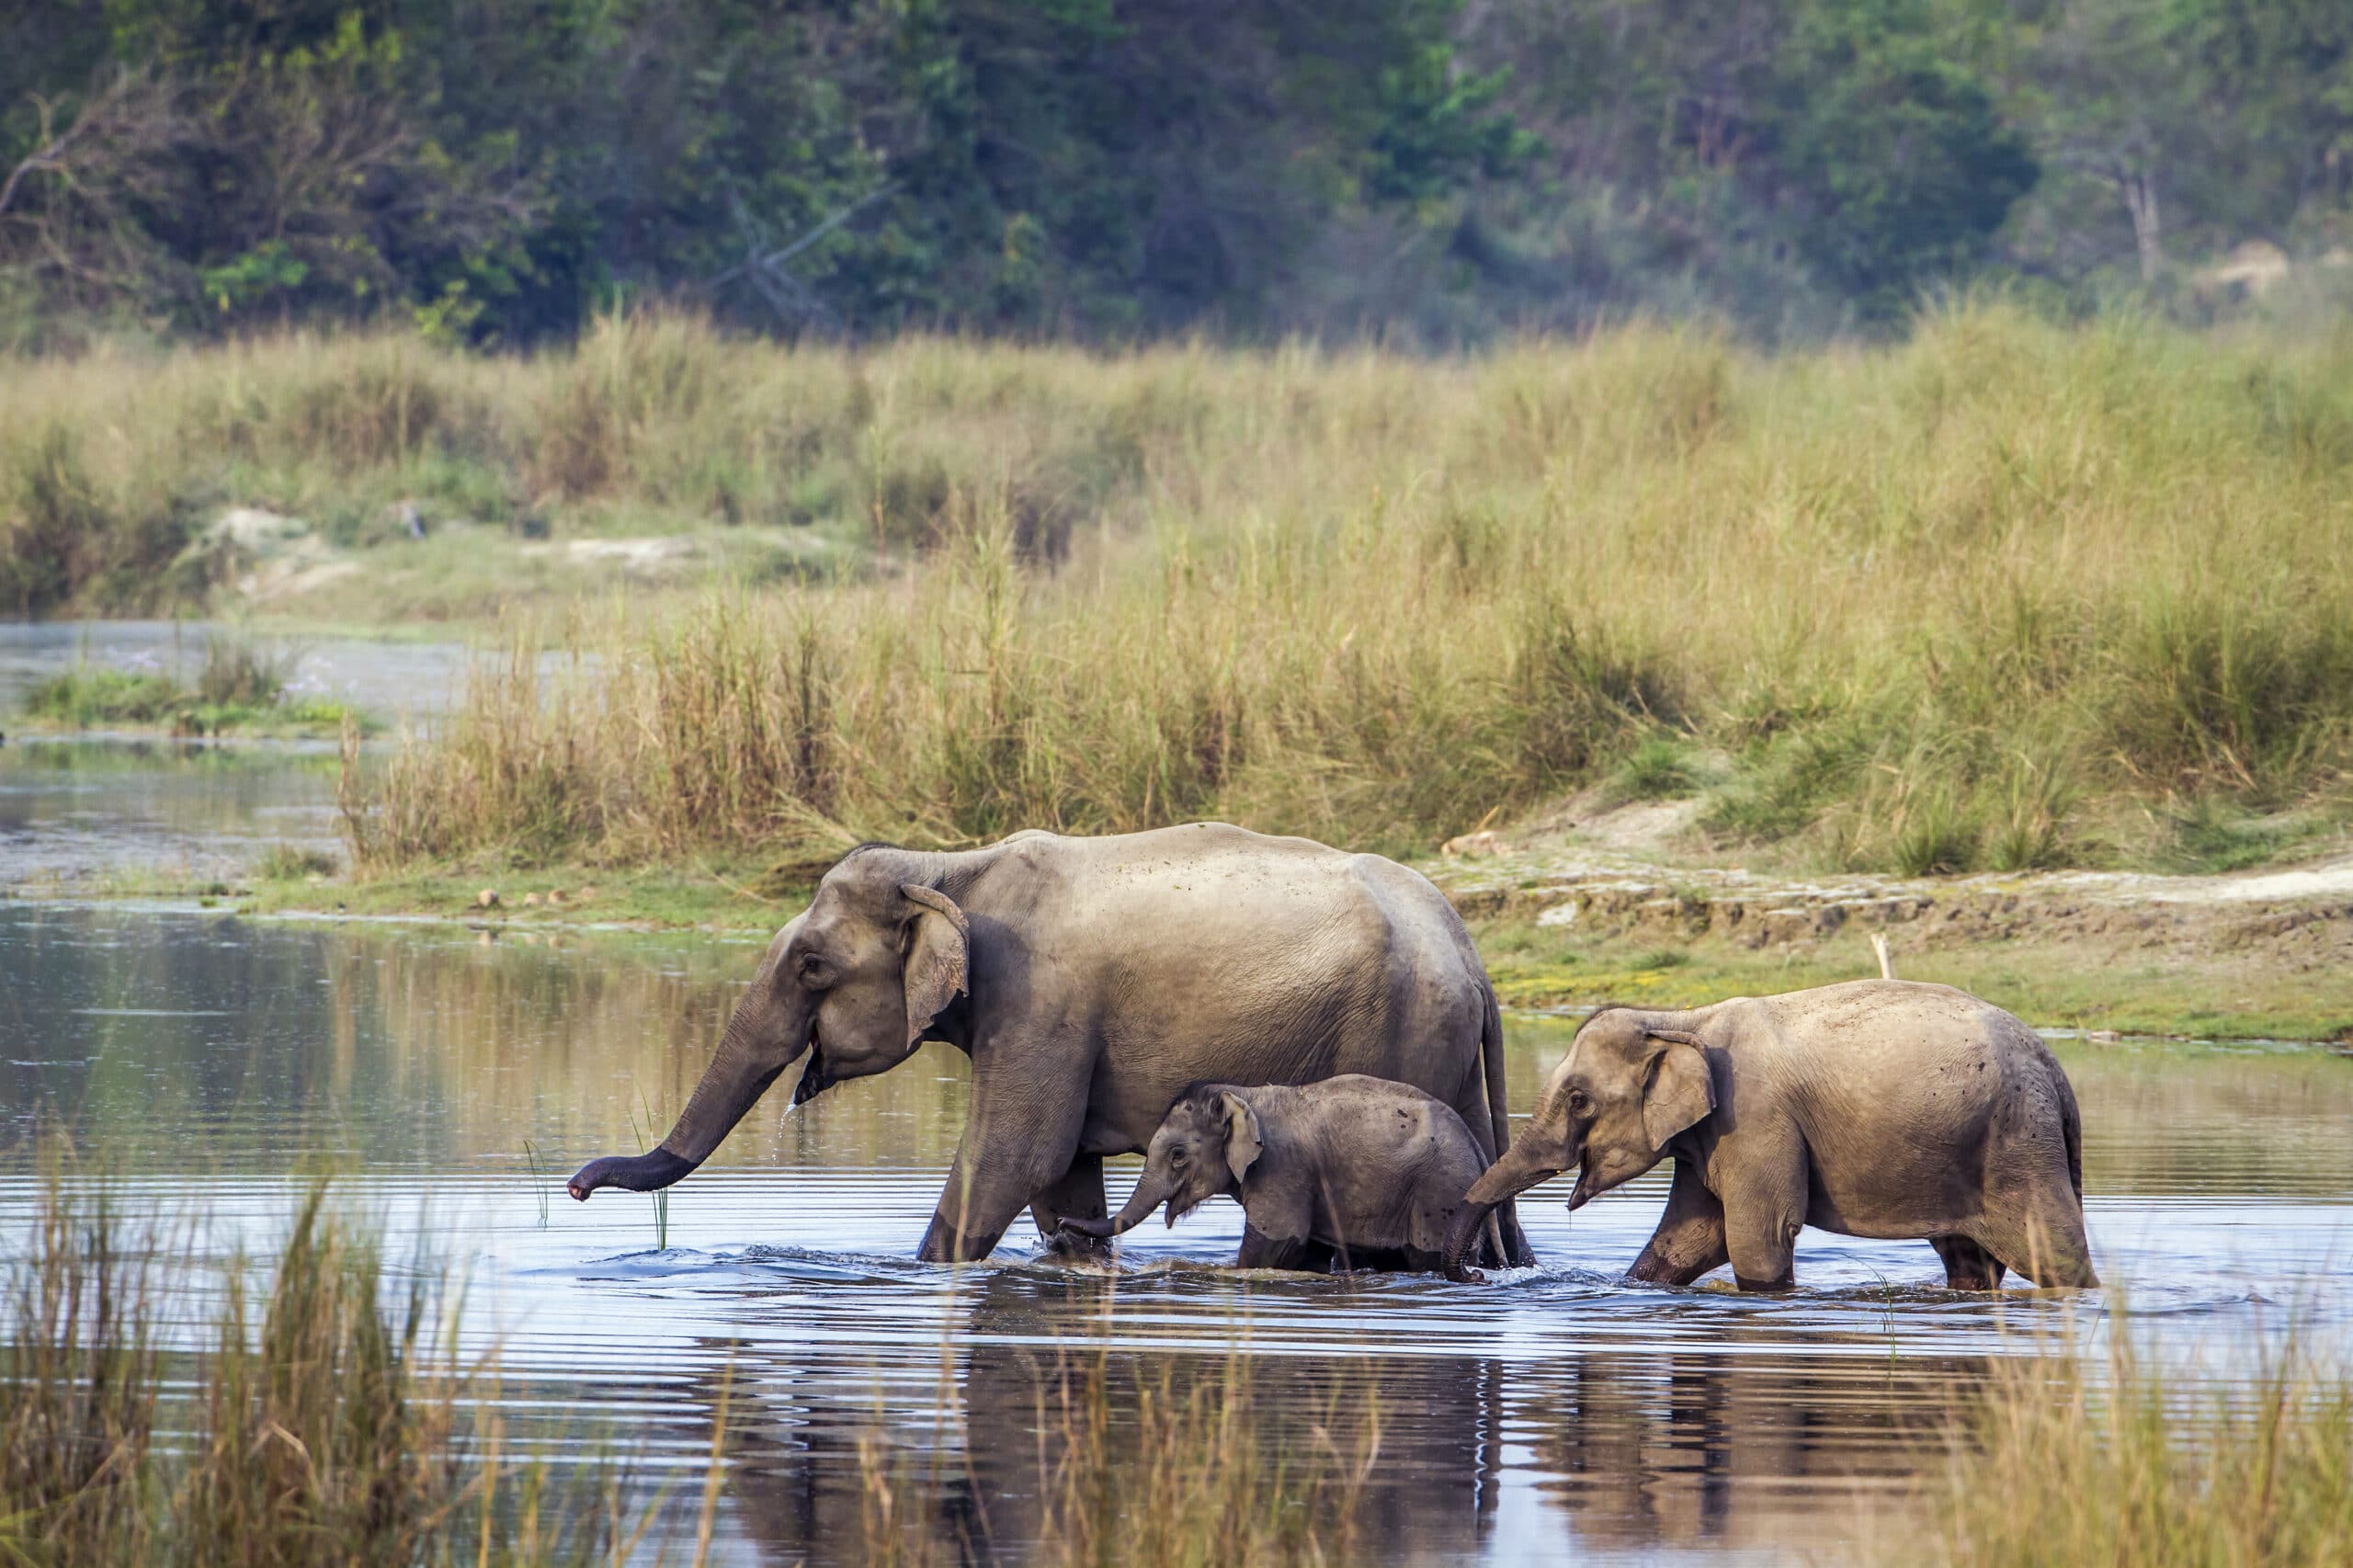 Eléphant d'AsieA family of three elephants in the river walking